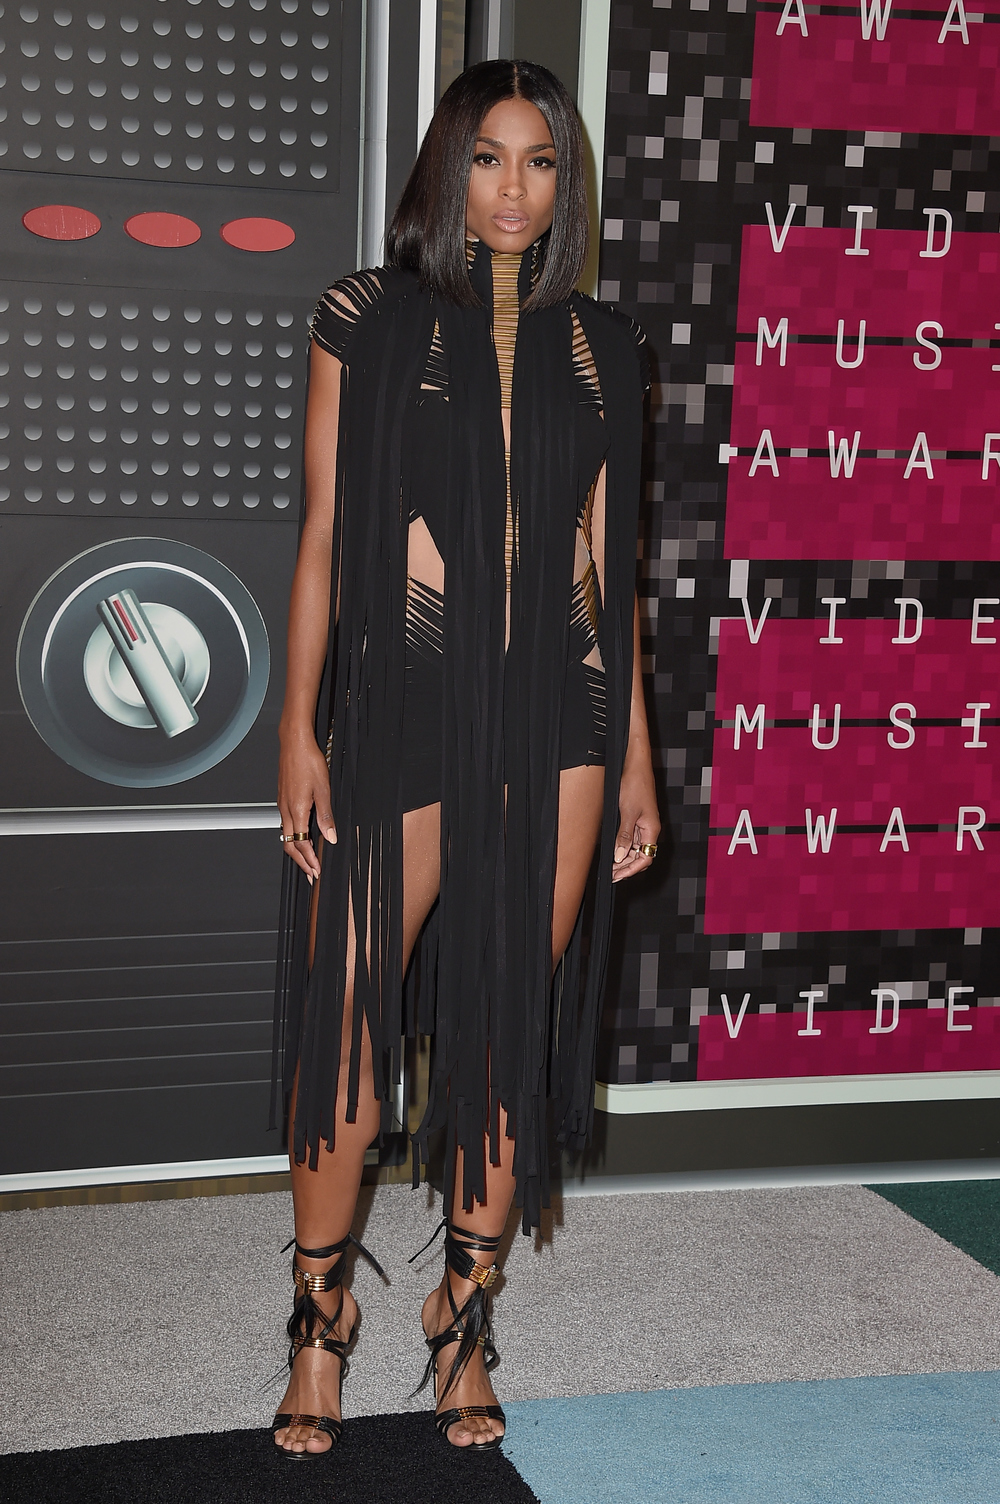 Ciara at the MTV VMAs 2015